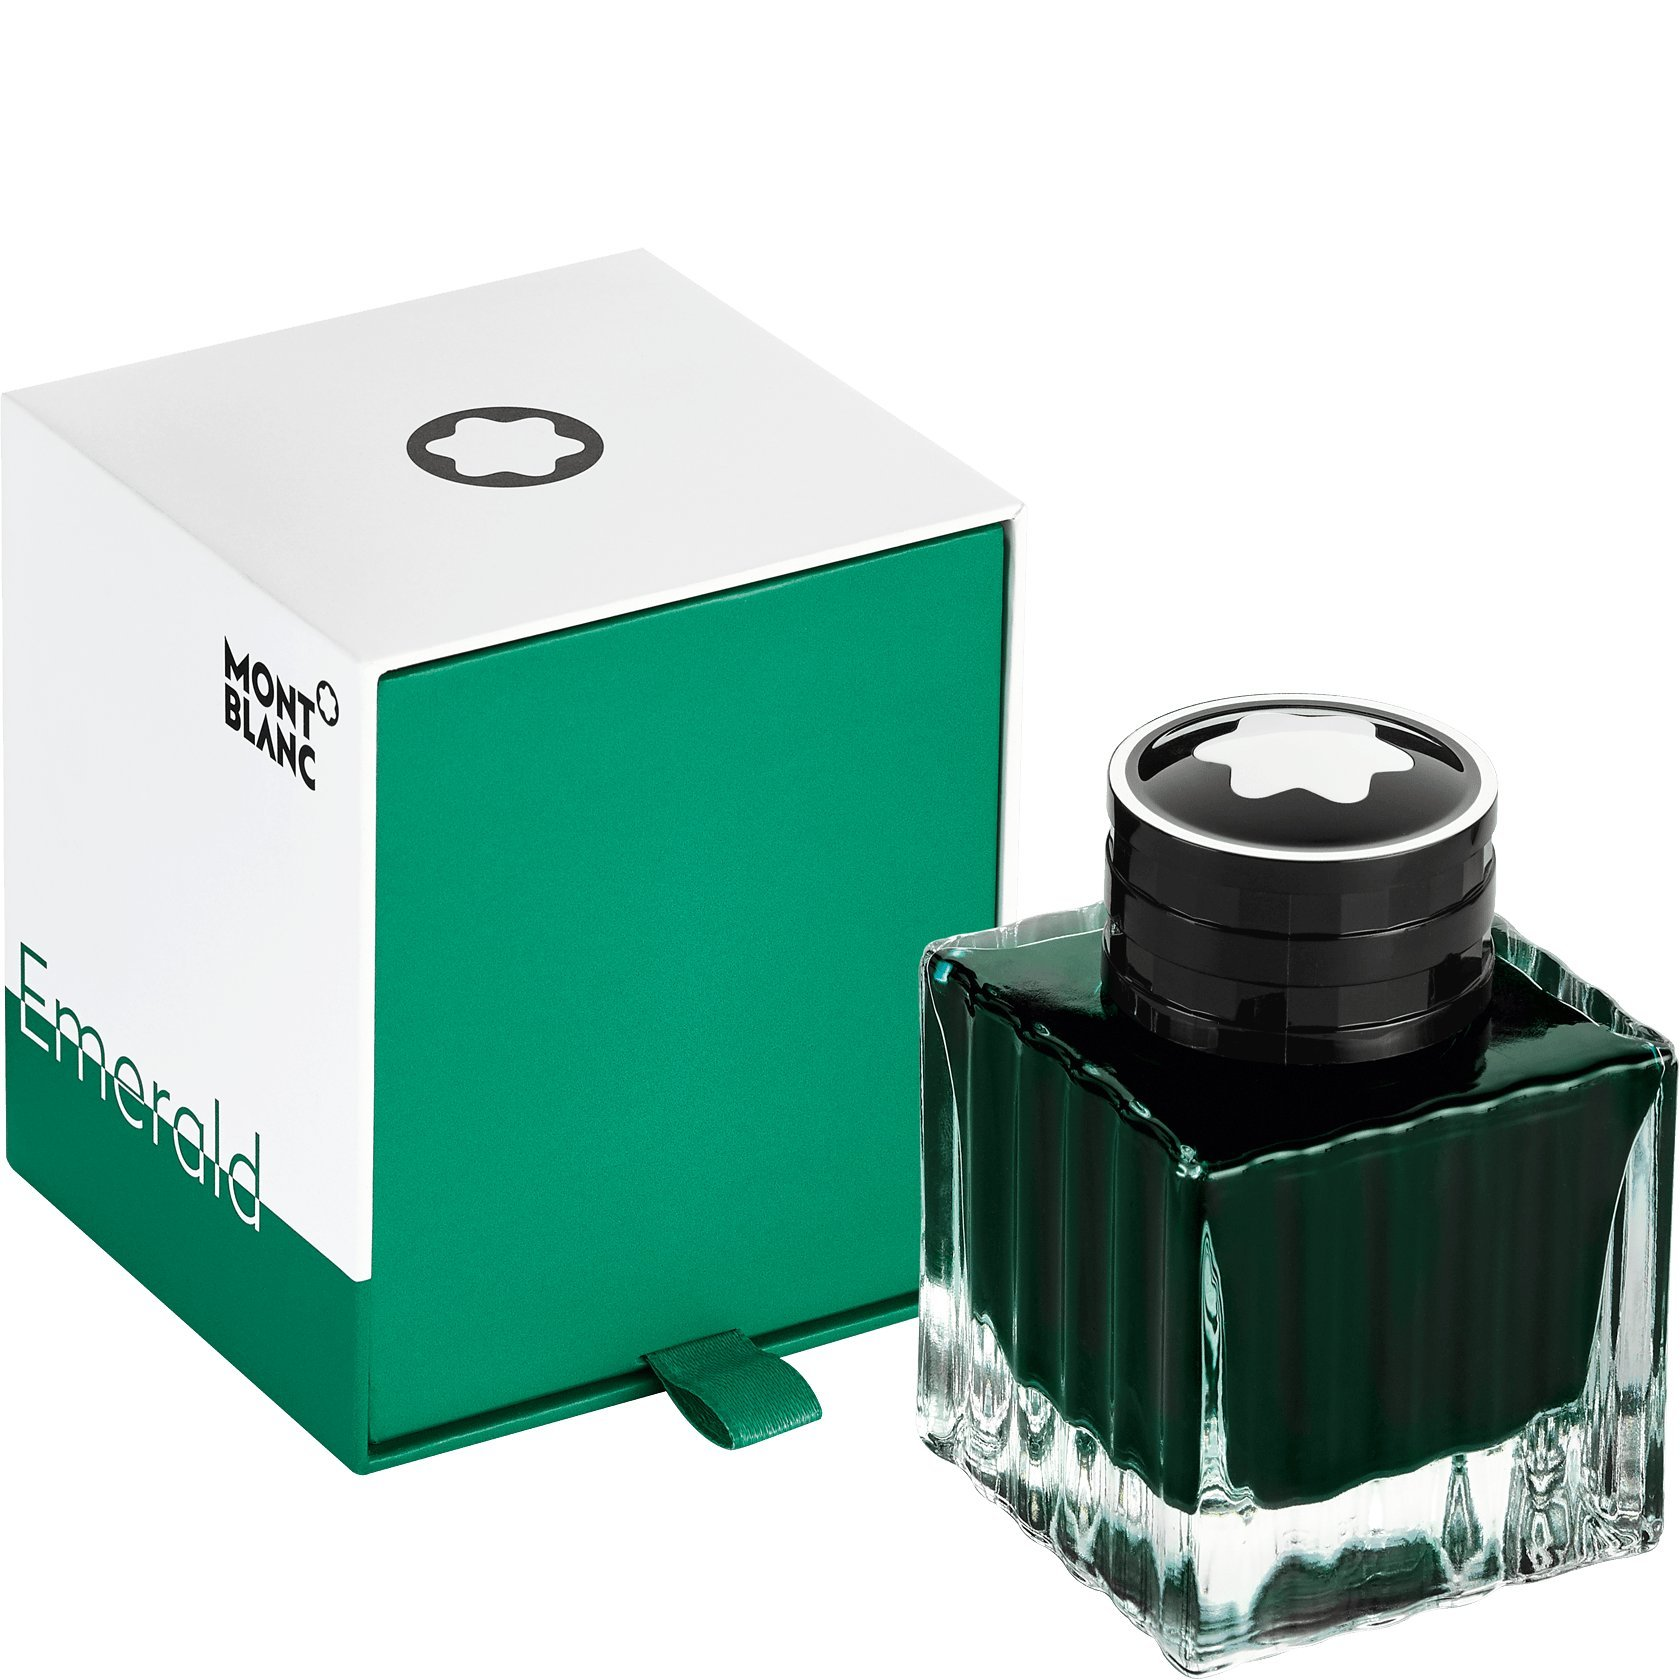 Montblanc 2018 Color Of The Year Emerald Green Bottled Fountain Pen Ink 50 ML by MONTBLANC (Image #1)